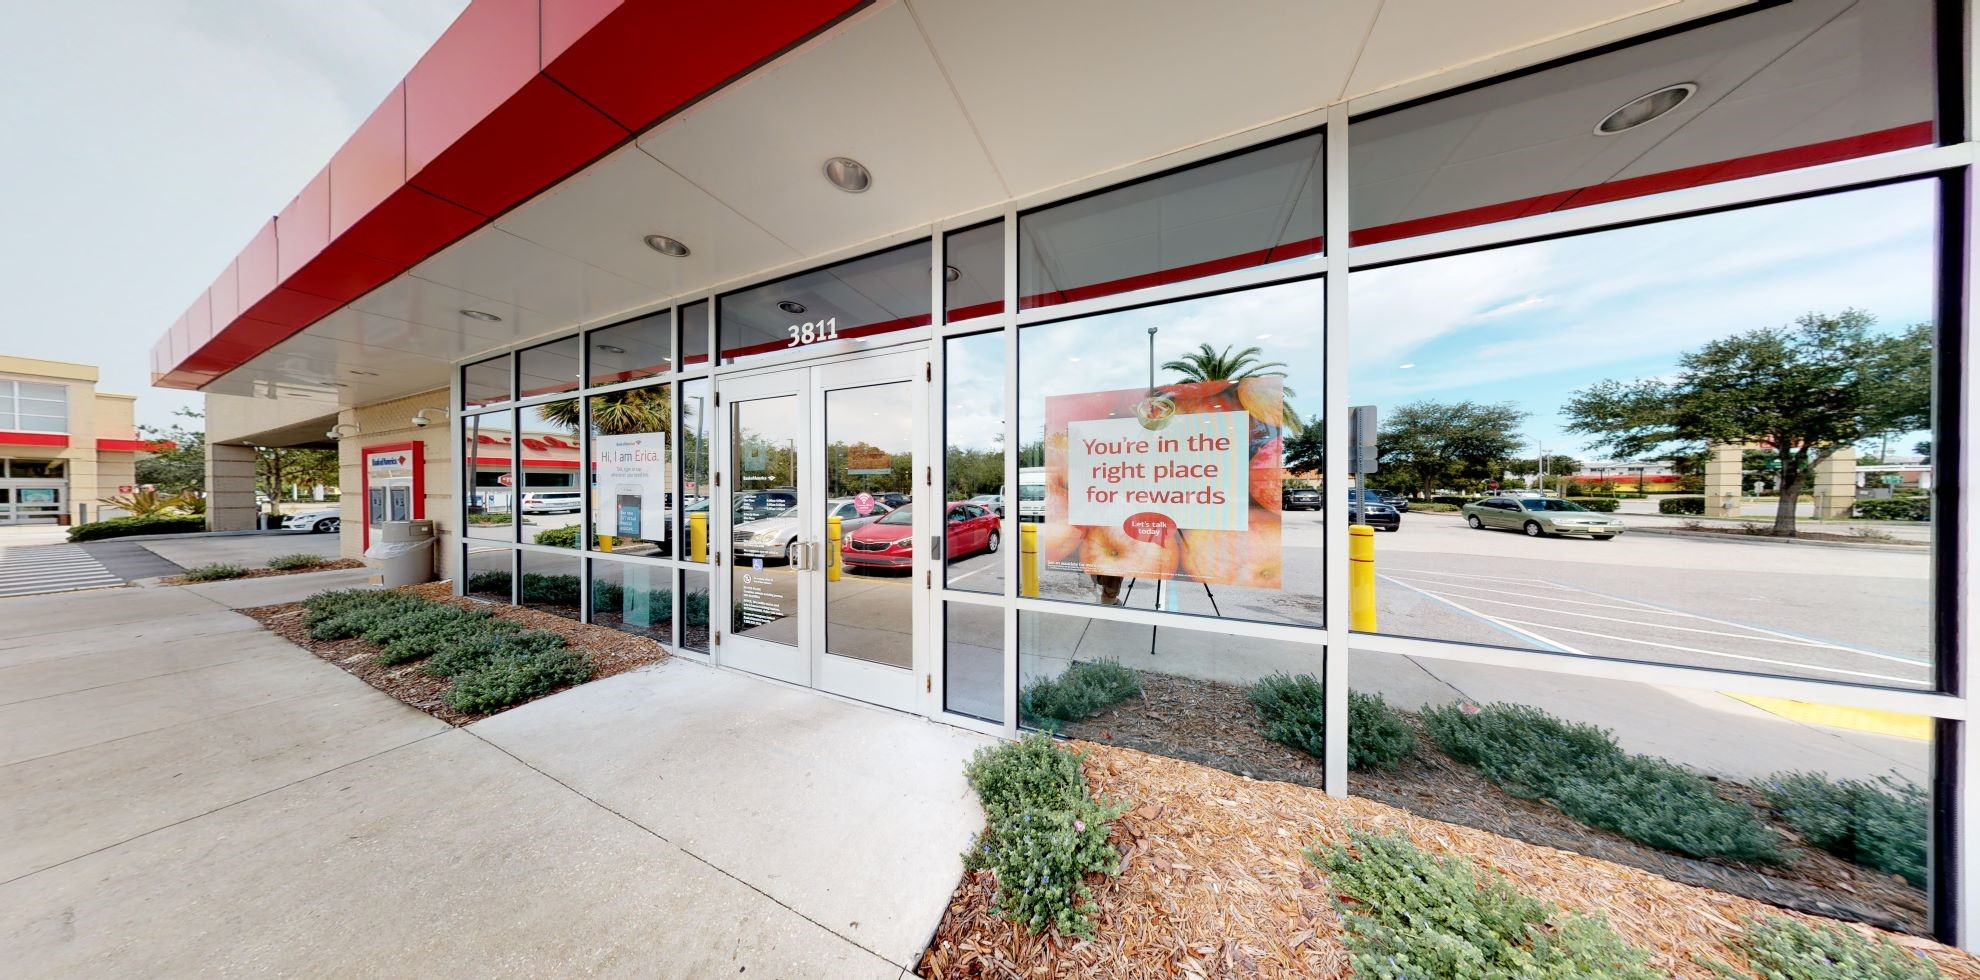 Bank of America financial center with drive-thru ATM and teller | 3811 4th St N, Saint Petersburg, FL 33703